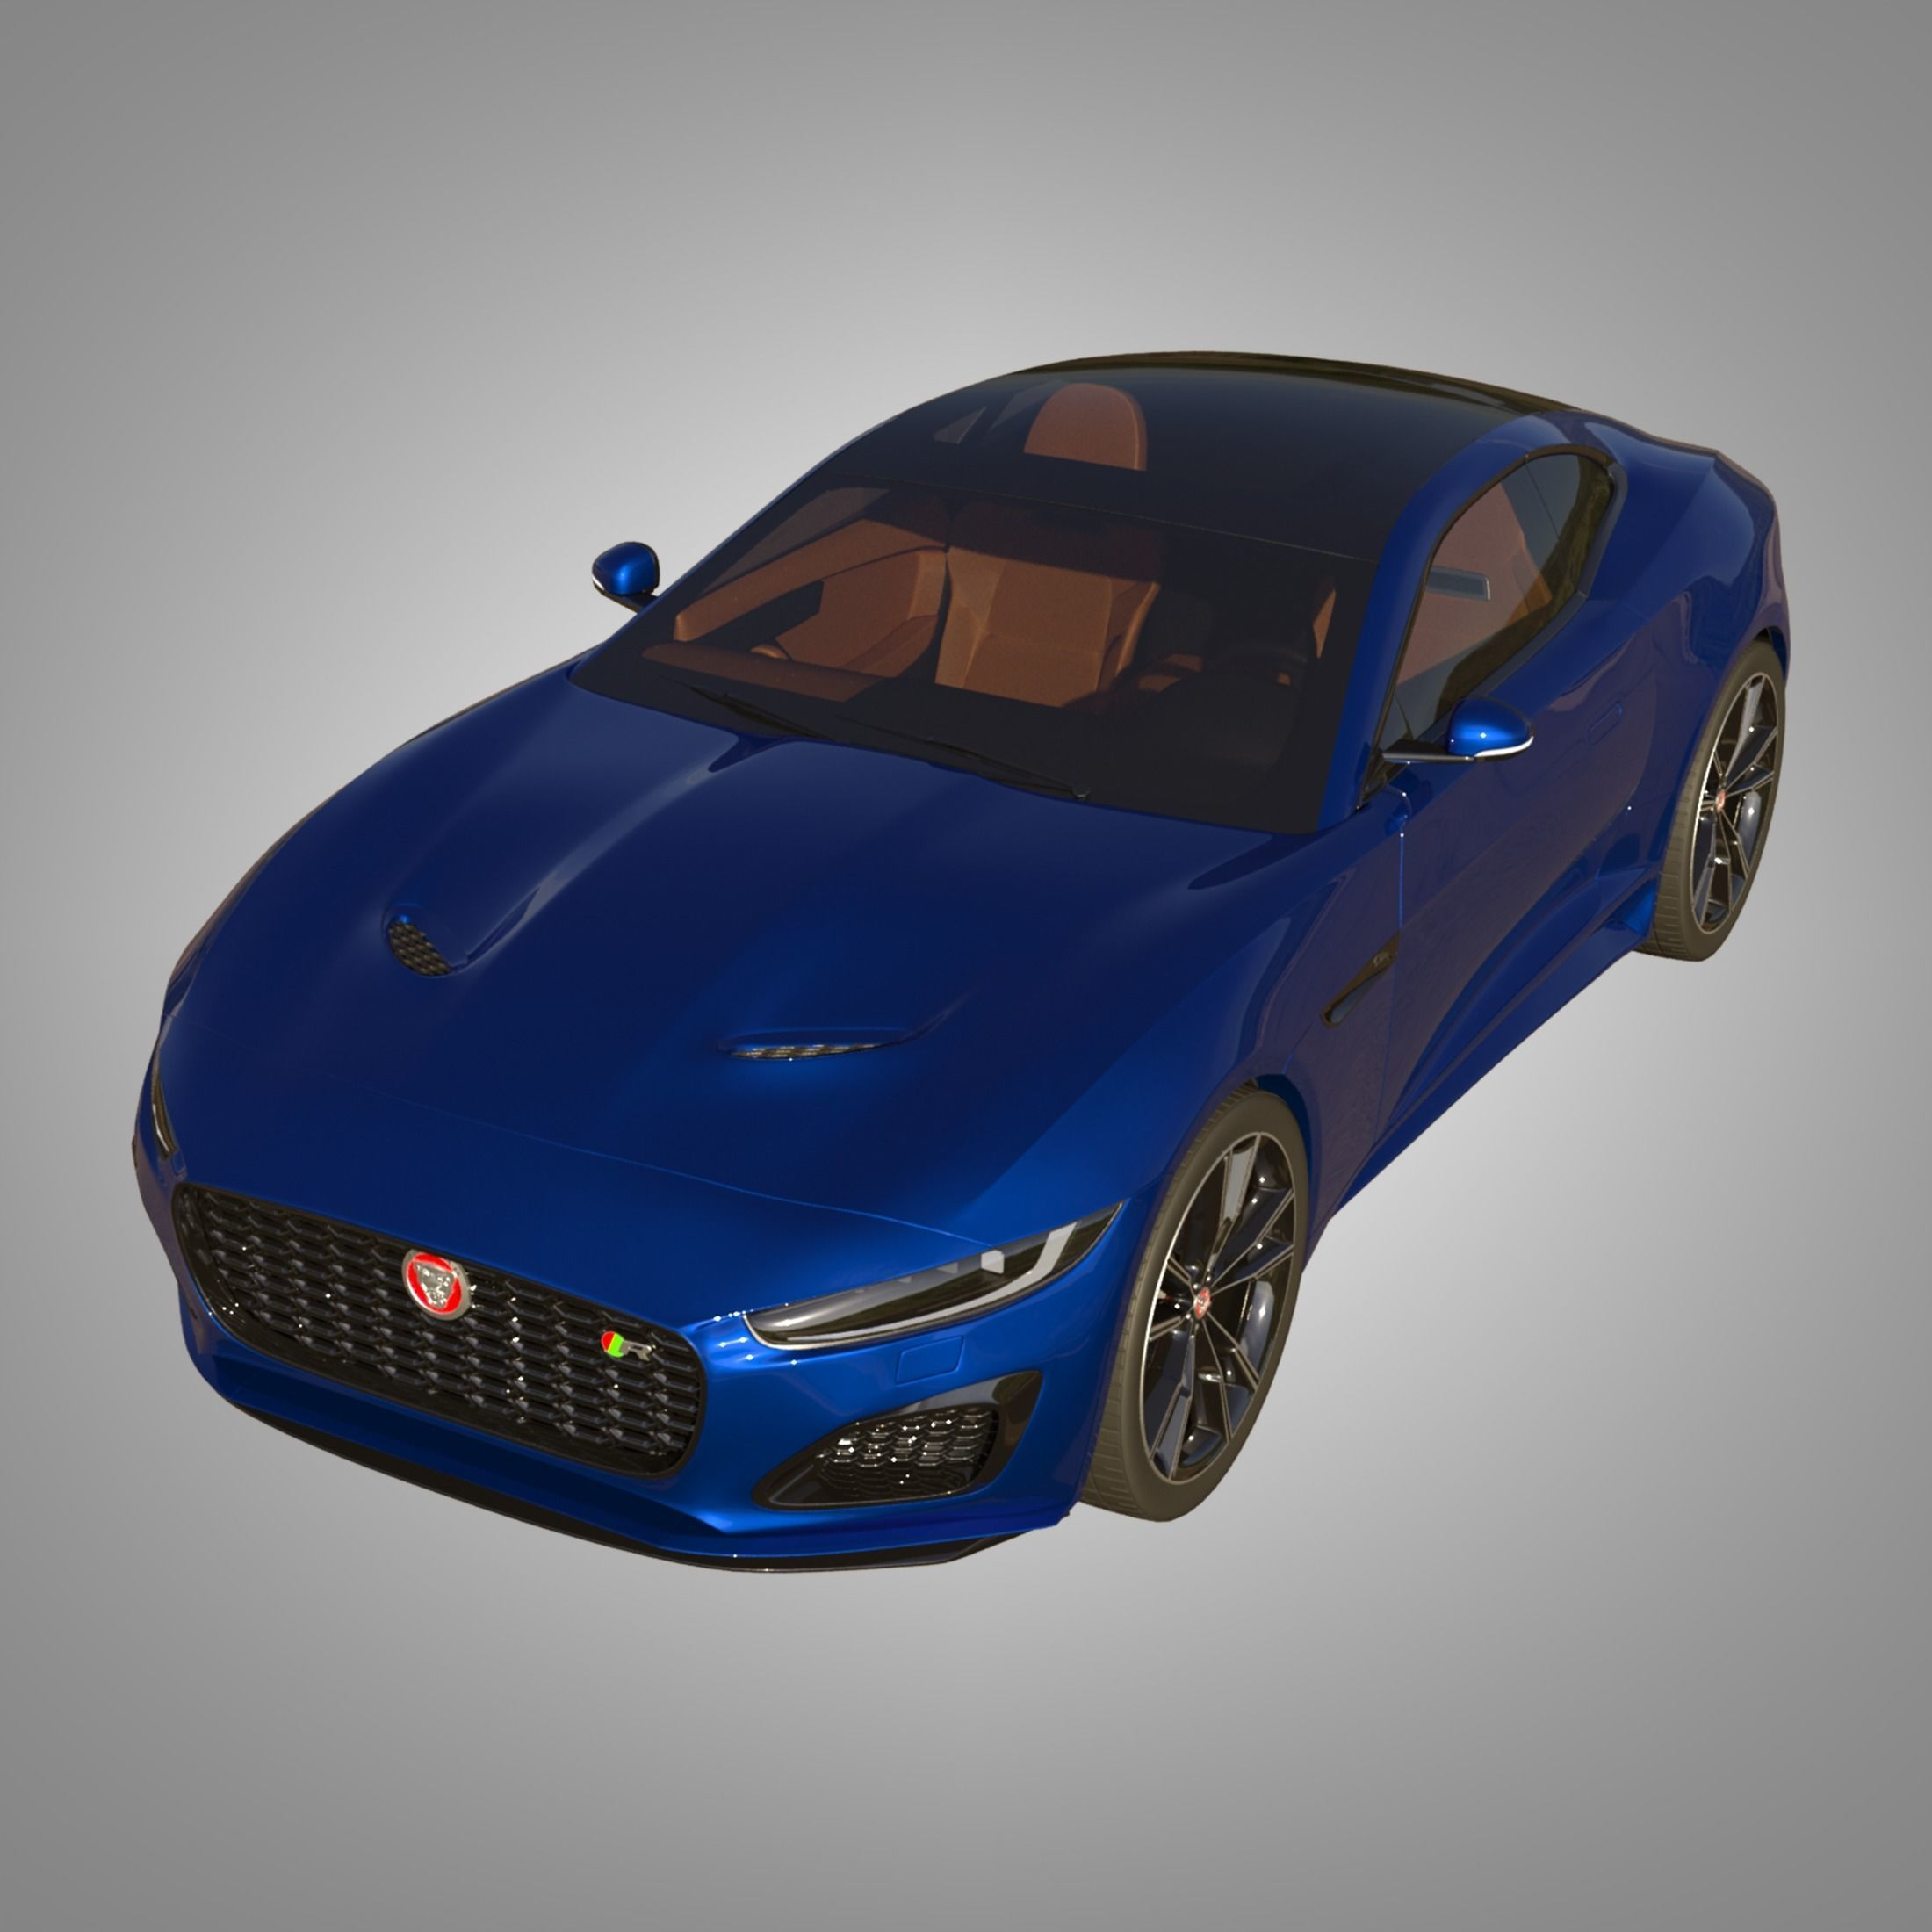 3D model cars Jaguar F-Type R Coupe 2021   CGTrader